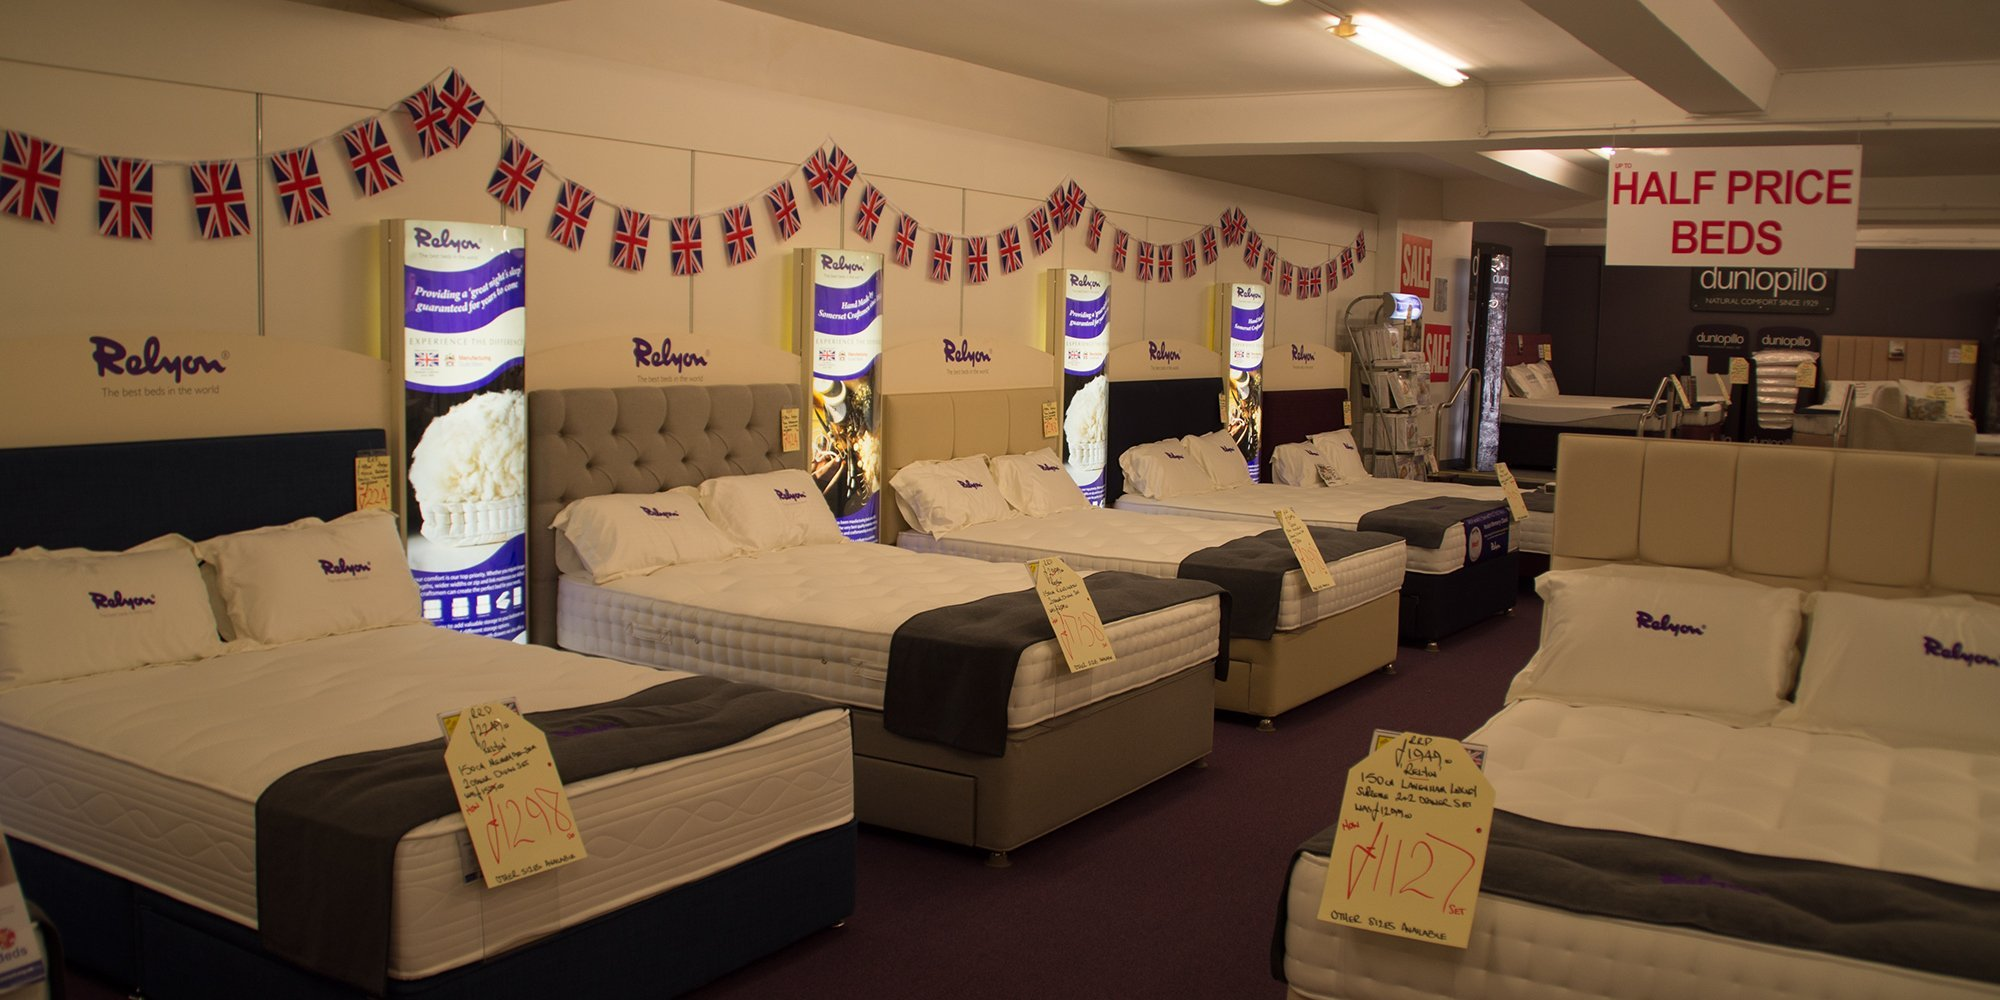 Wide range of beds available at Clements